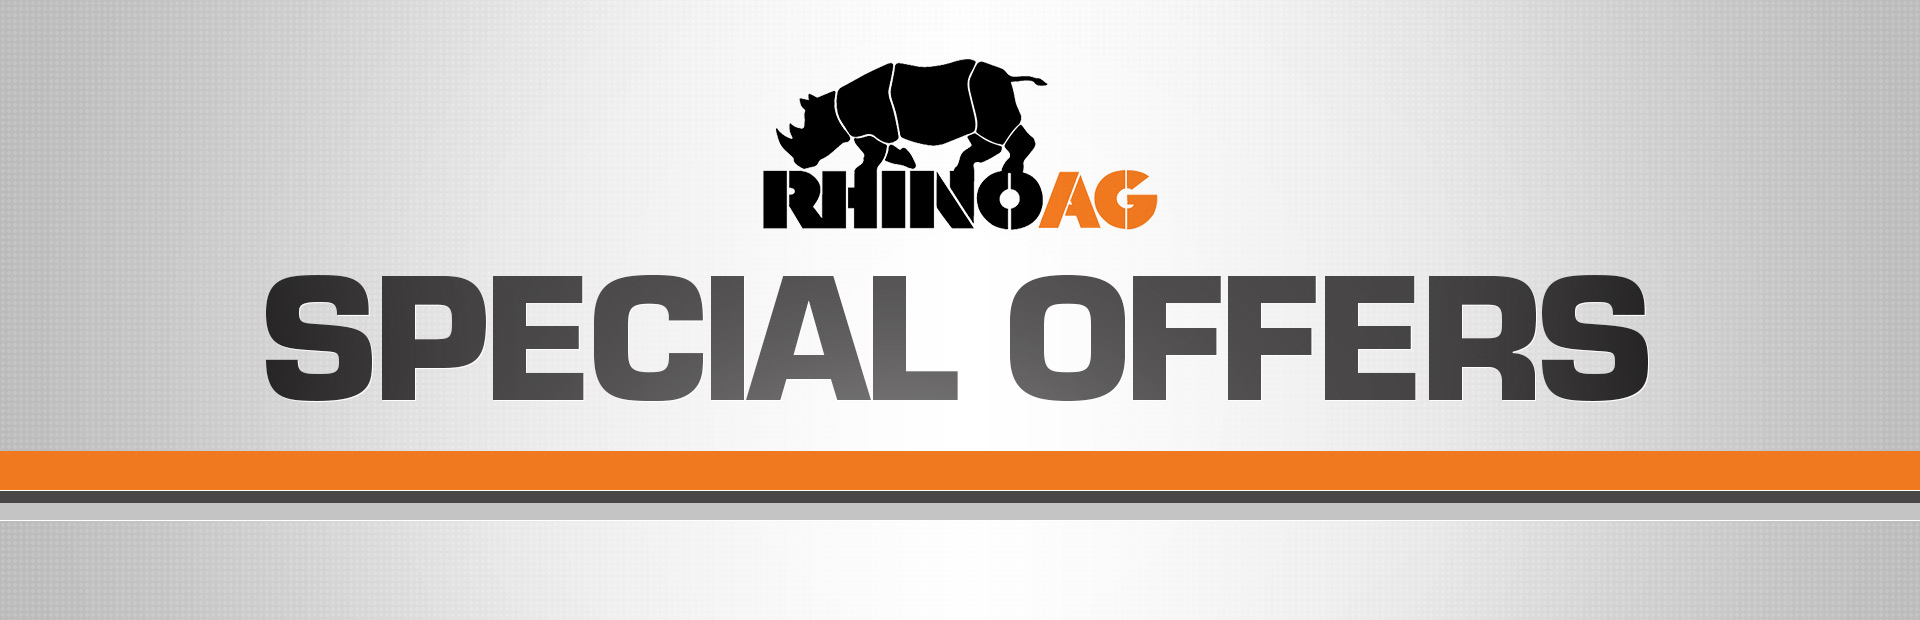 RhinoAg: Special Offers